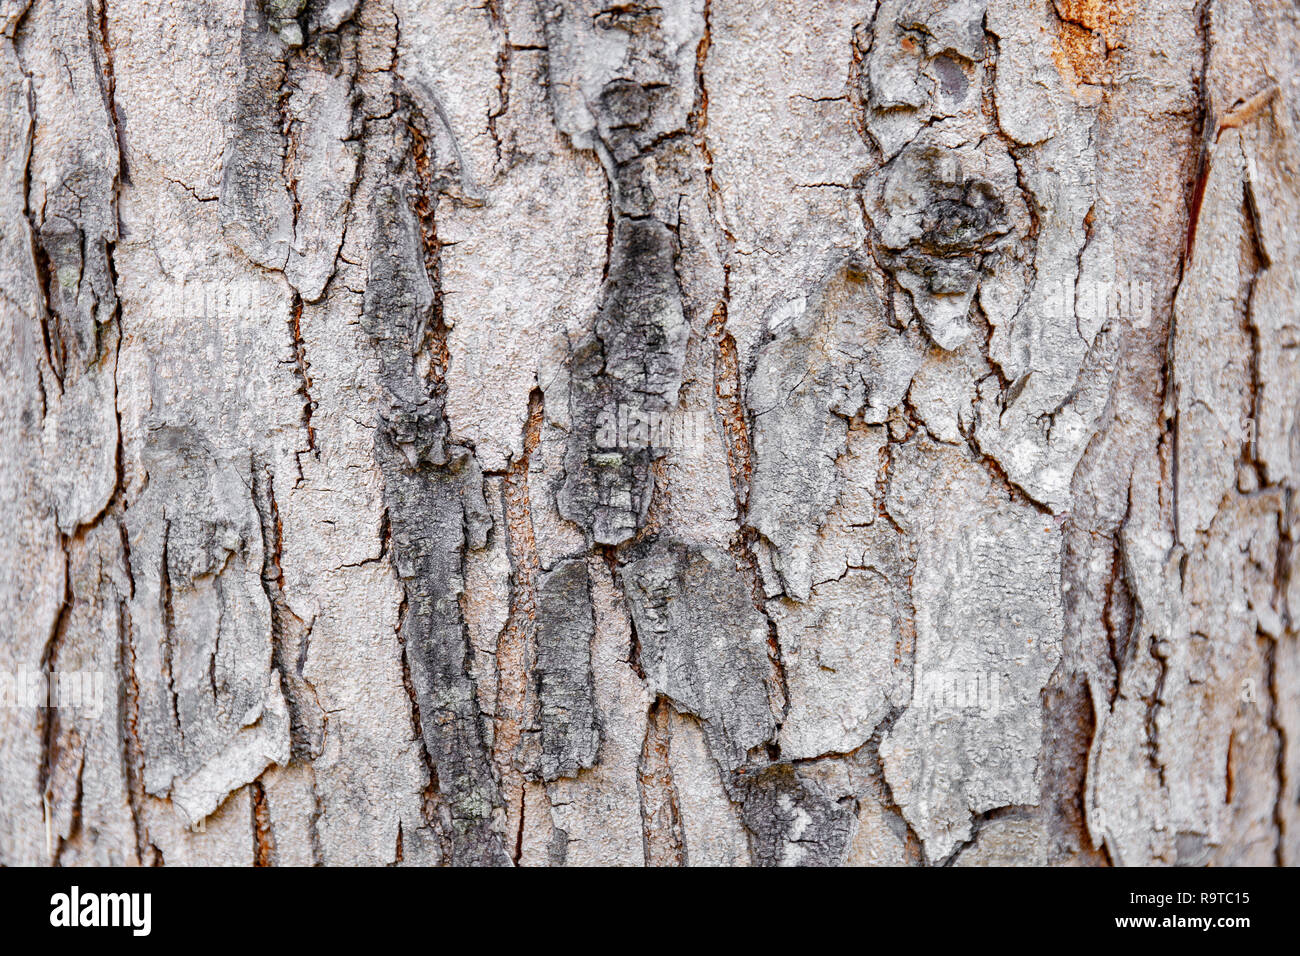 Close-up old tree bark of hardwood with cracked and grungy textured, Abstract nature background. - Stock Image